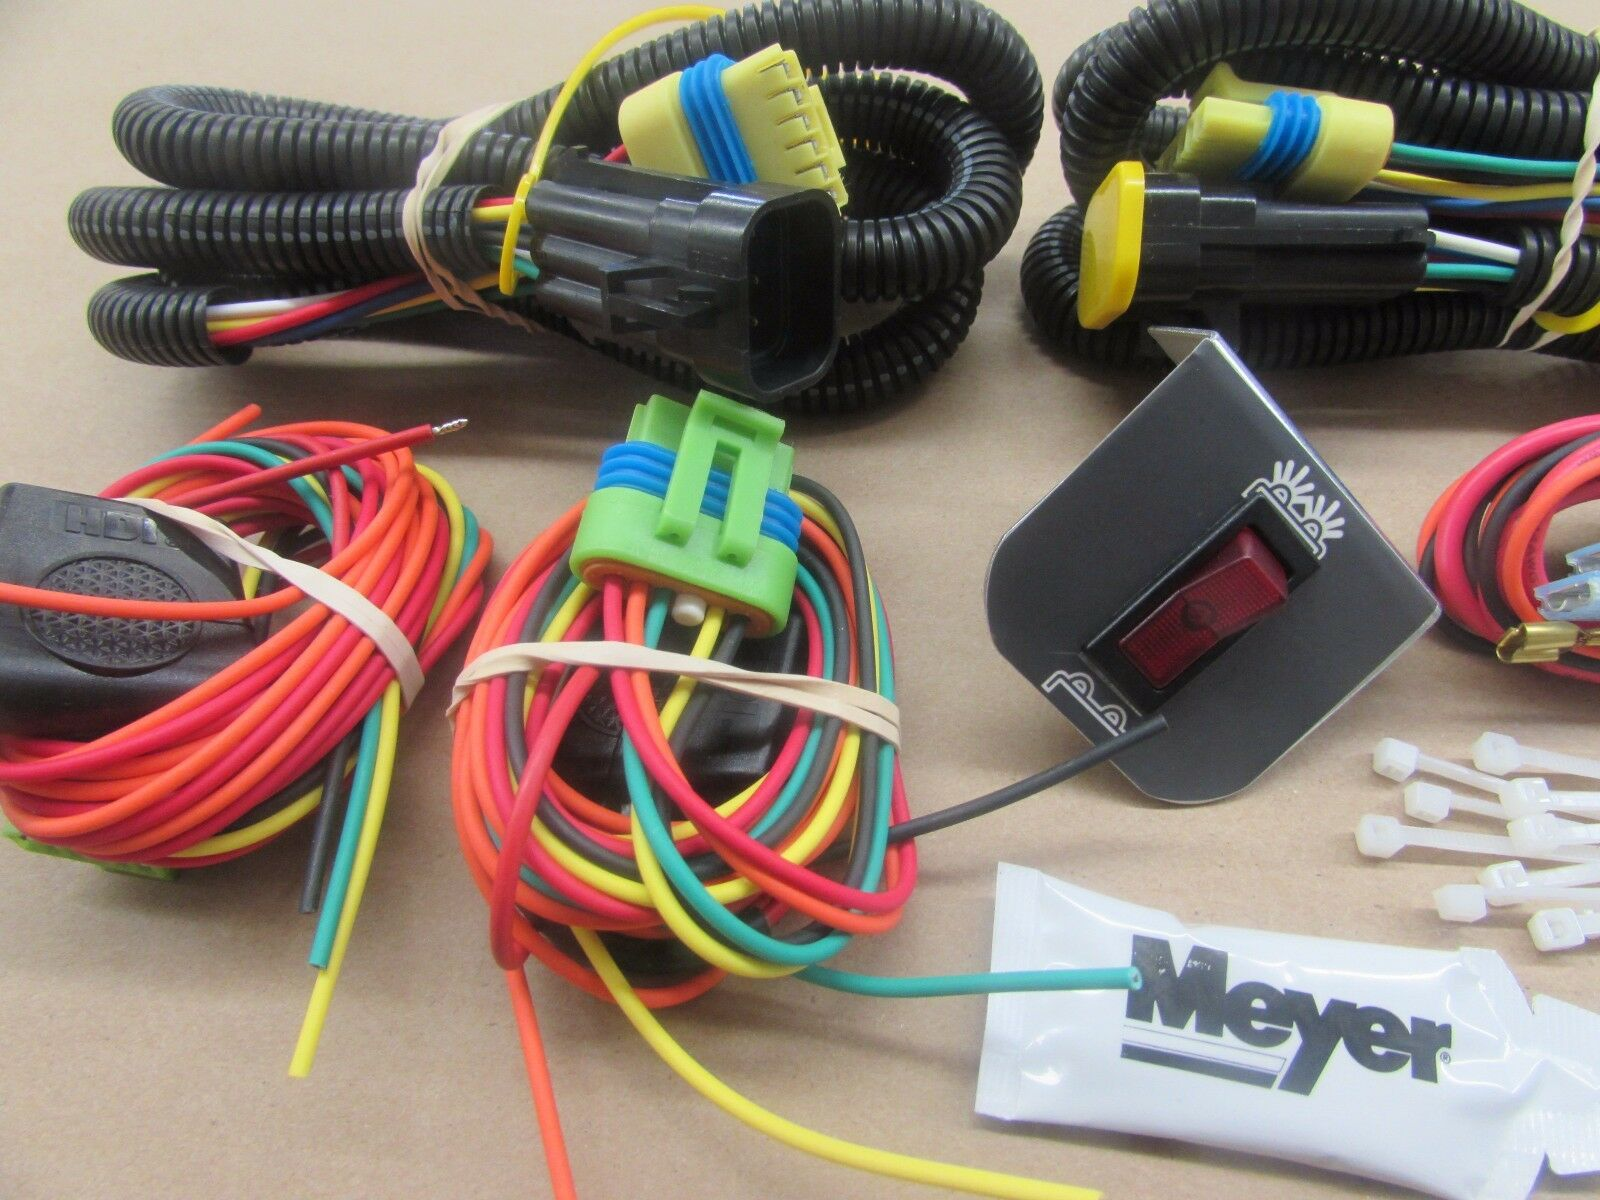 1 of 3FREE Shipping New Genuine Meyer Snow Plow Head Light Wiring Kit For  The Change Over Modules 2 of 3 New Genuine Meyer Snow Plow Head Light Wiring  Kit ...